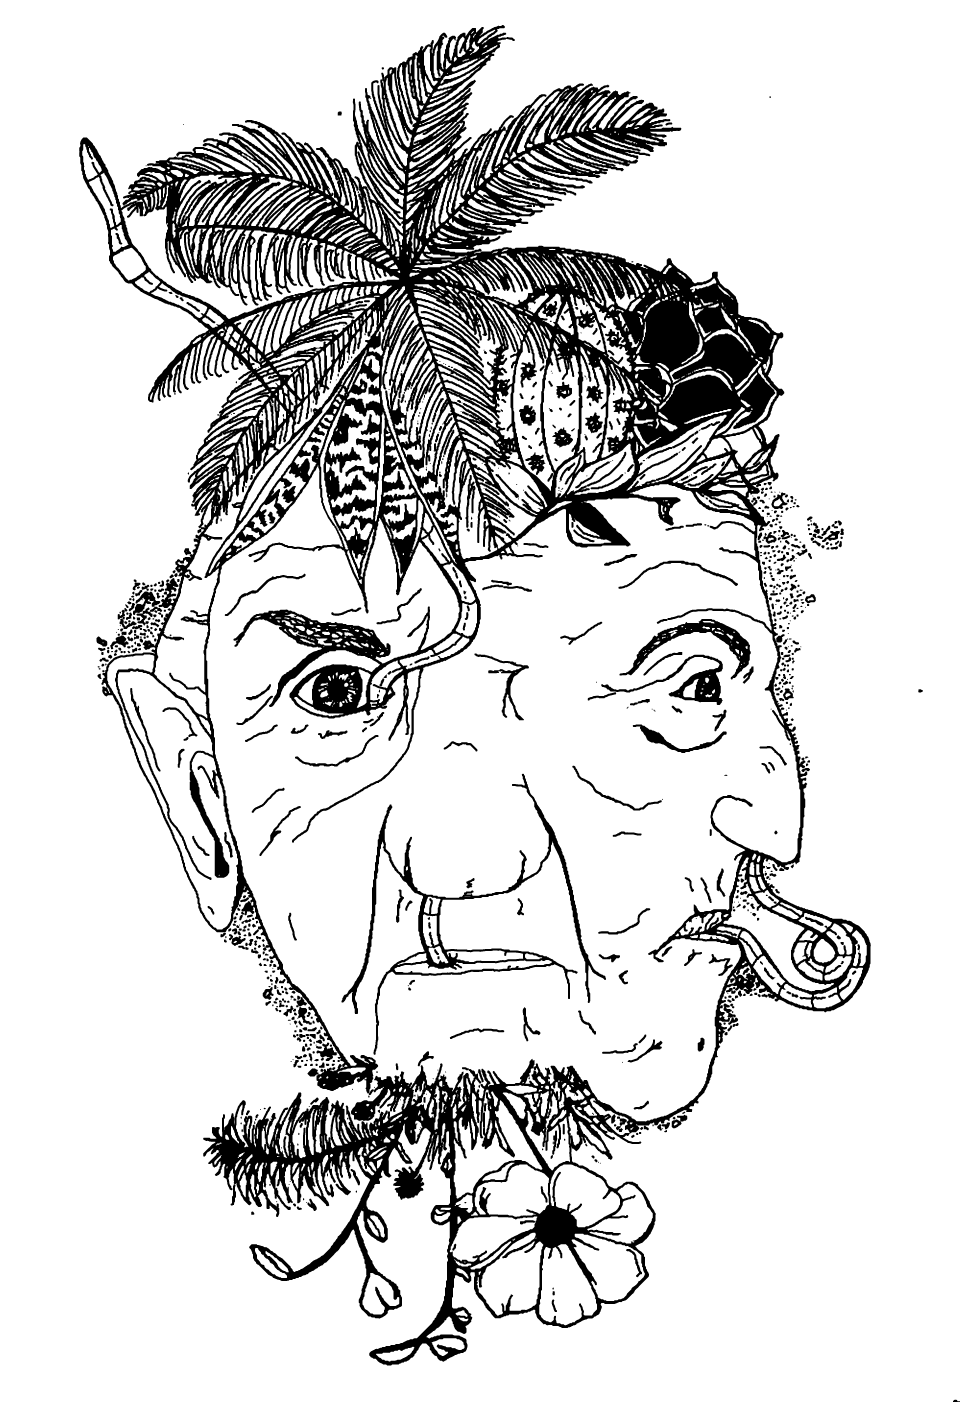 Image of 2-Faced